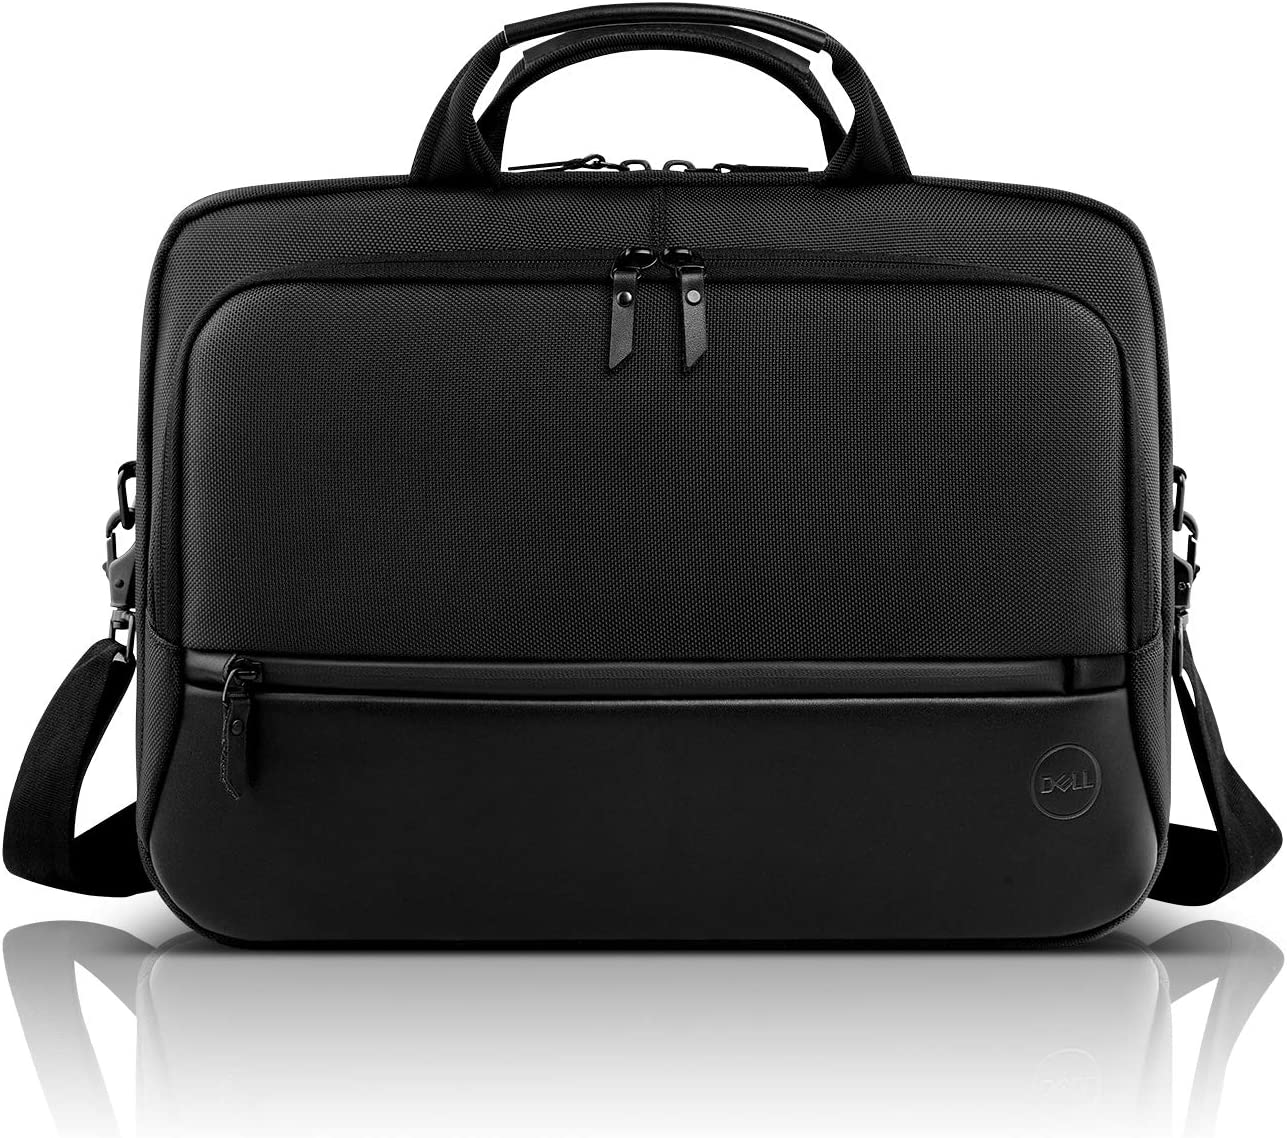 Dell Premier Briefcase 15 (PE1520C). Designed to Allow You to Move Quickly Through TSA Security checkpoints Without Removing Your Laptop.